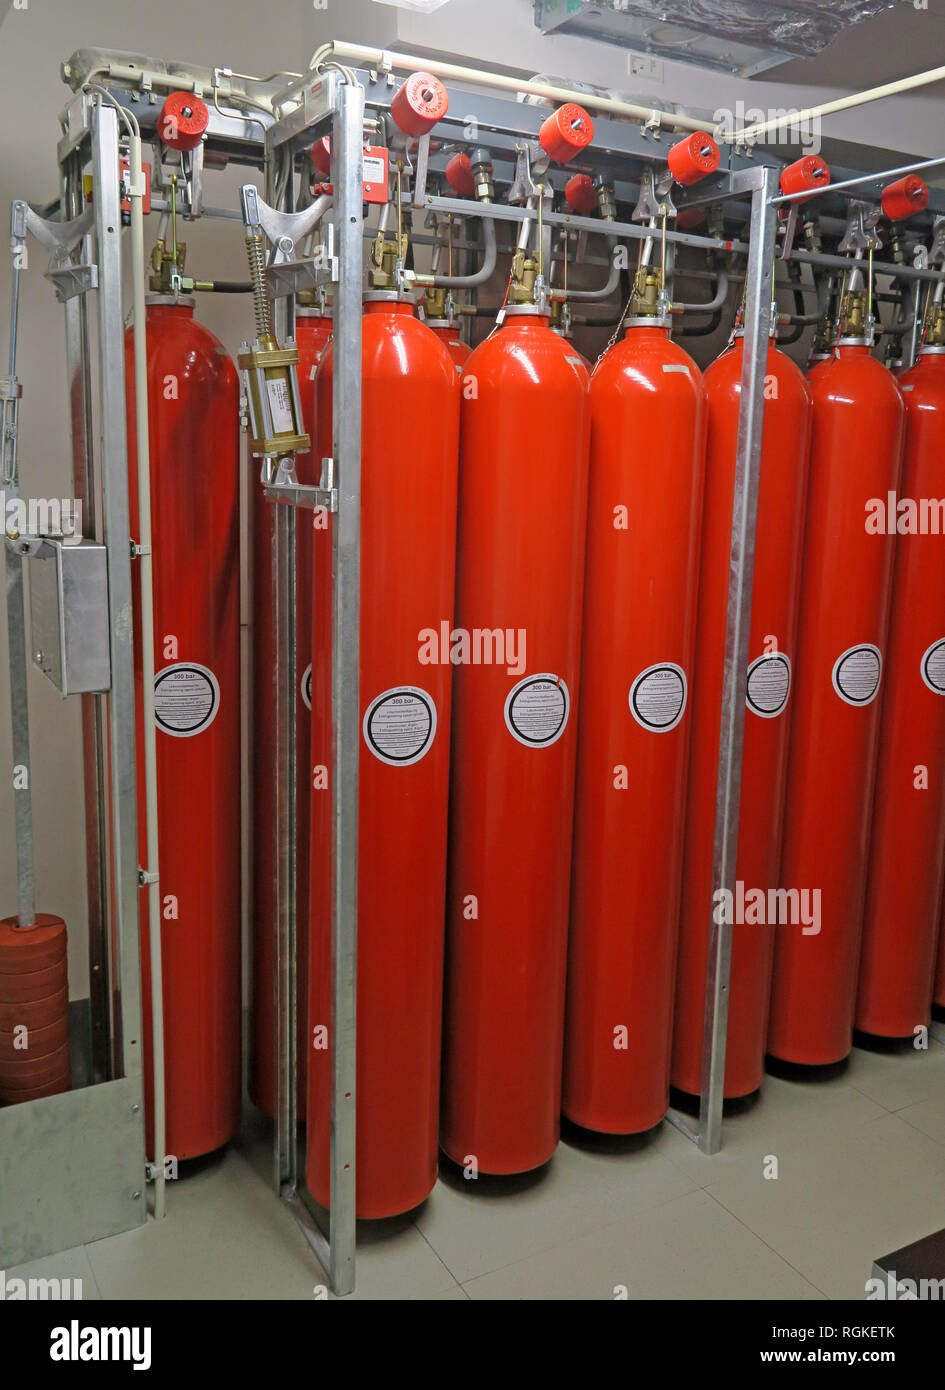 Heavy compressed Argon Gas Cylinders in a cloud data storage  centre, Mainz, Rhineland-Palatinate, Germany, Europe - Stock Image